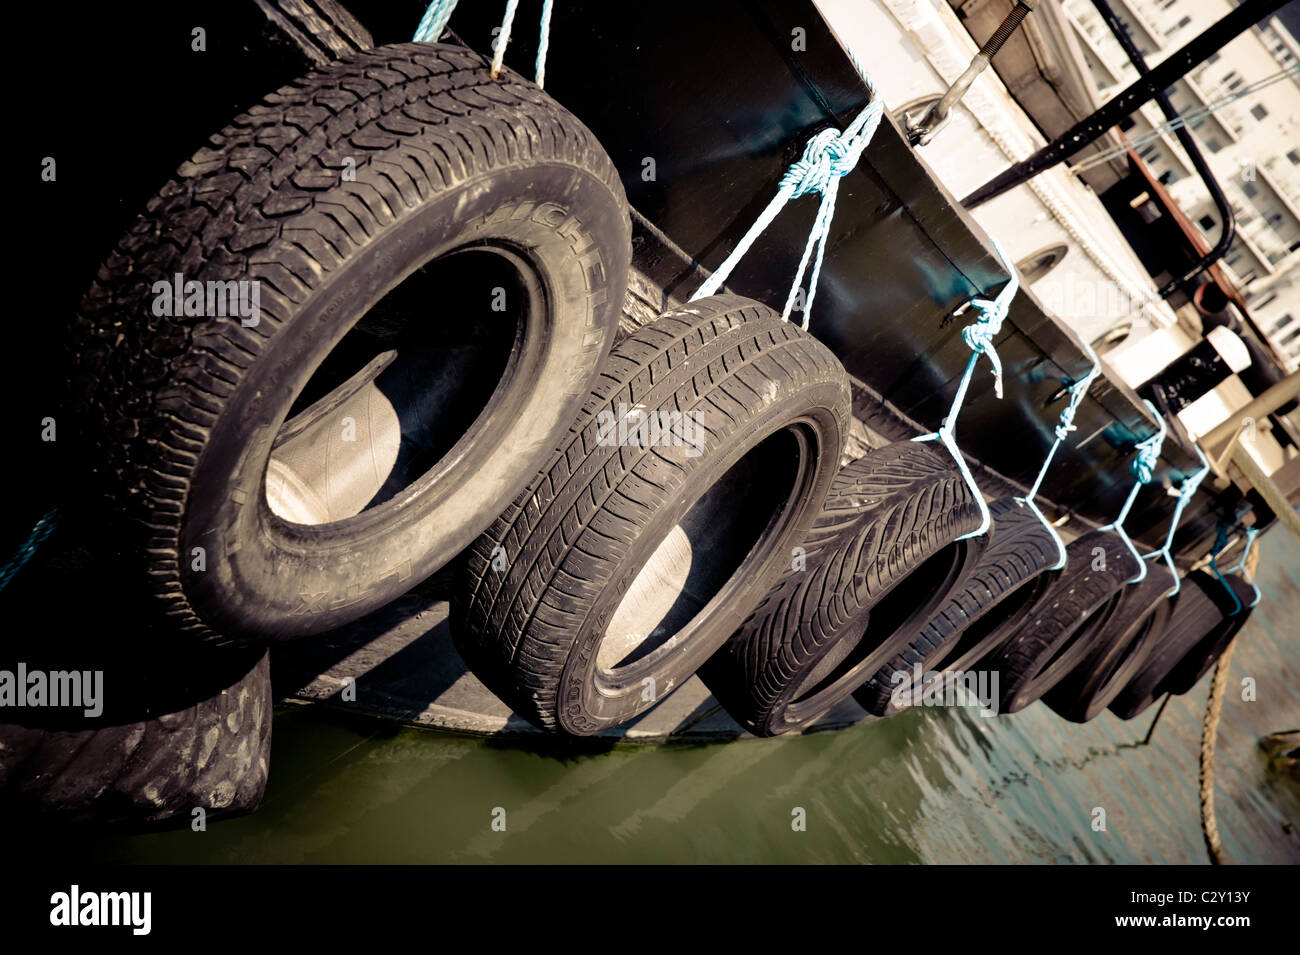 Tyres along the side of Wendy Ann 2, a tug style boat tied up on the river Arun in Littlehampton, West Sussex - Stock Image